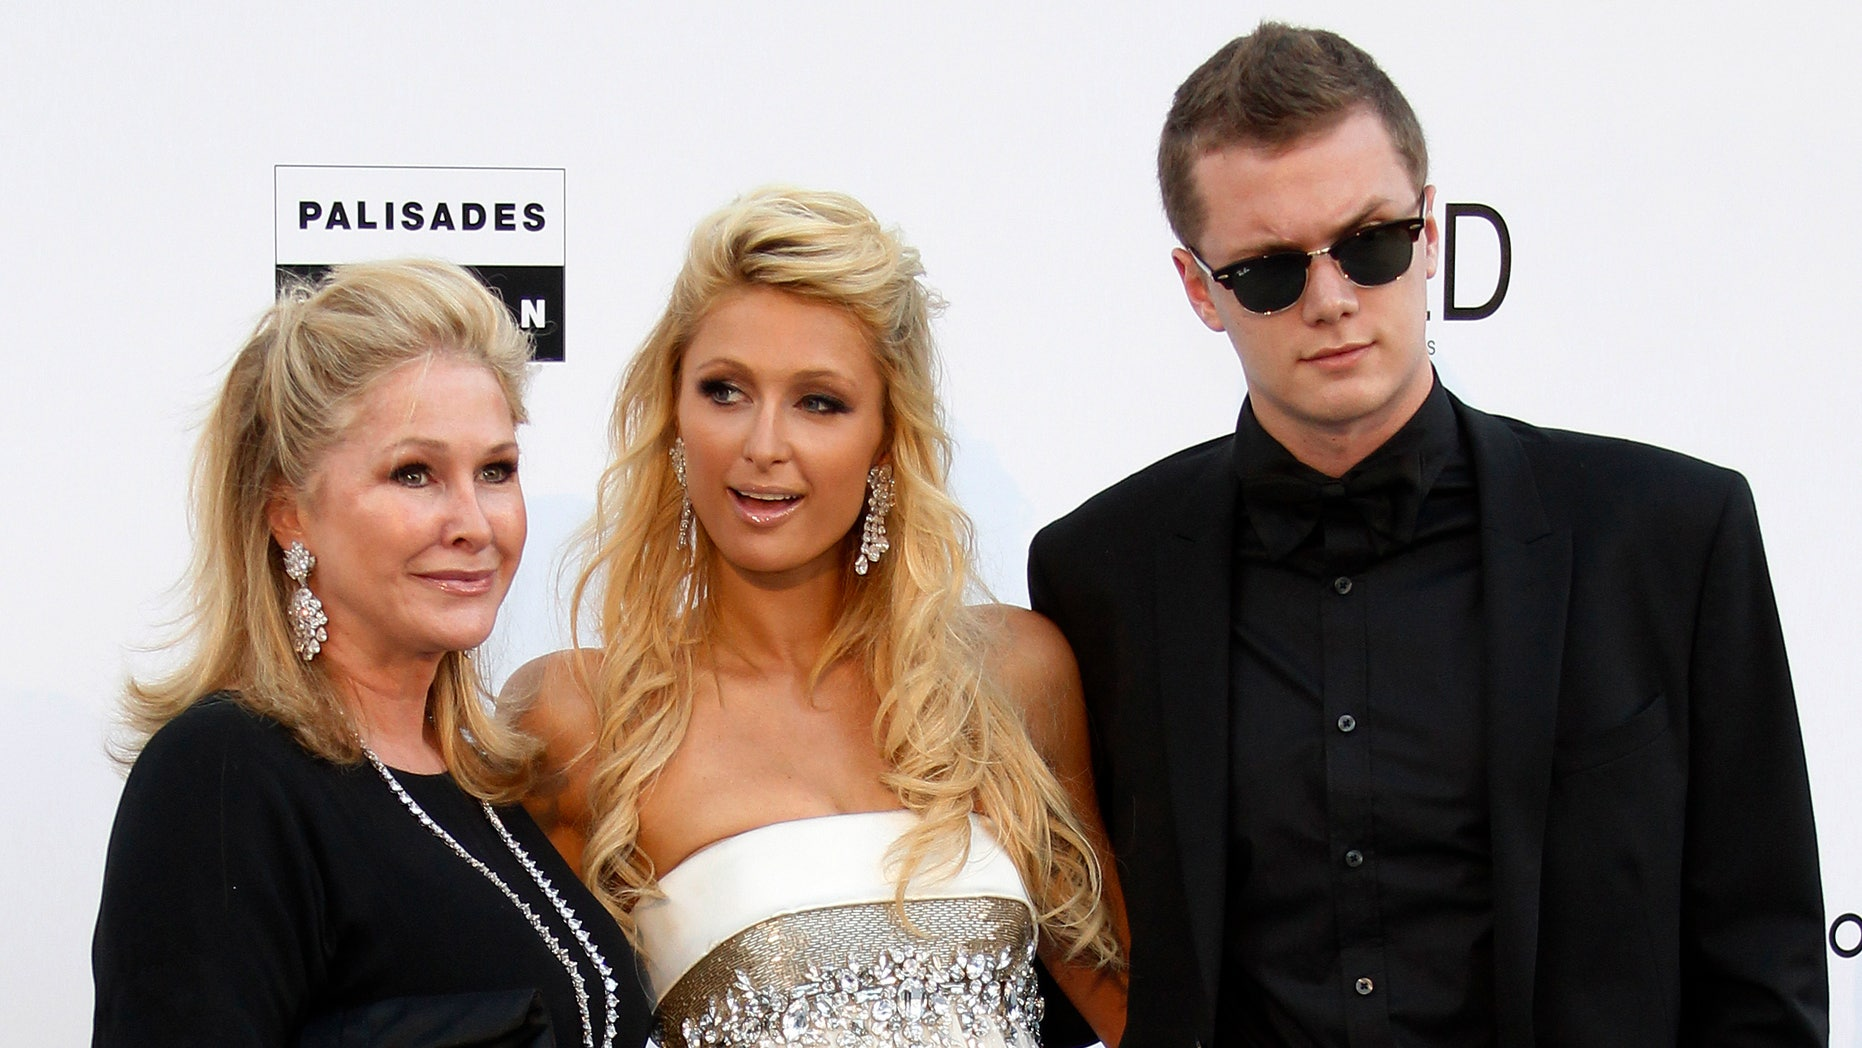 May 20, 2010. Paris Hilton (C), her mother Kathy (L) and her brother Barron Nicholas Hilton arrive for the amfAR's Cinema Against AIDS 2010 event in Antibes during the 63rd Cannes Film Festival.